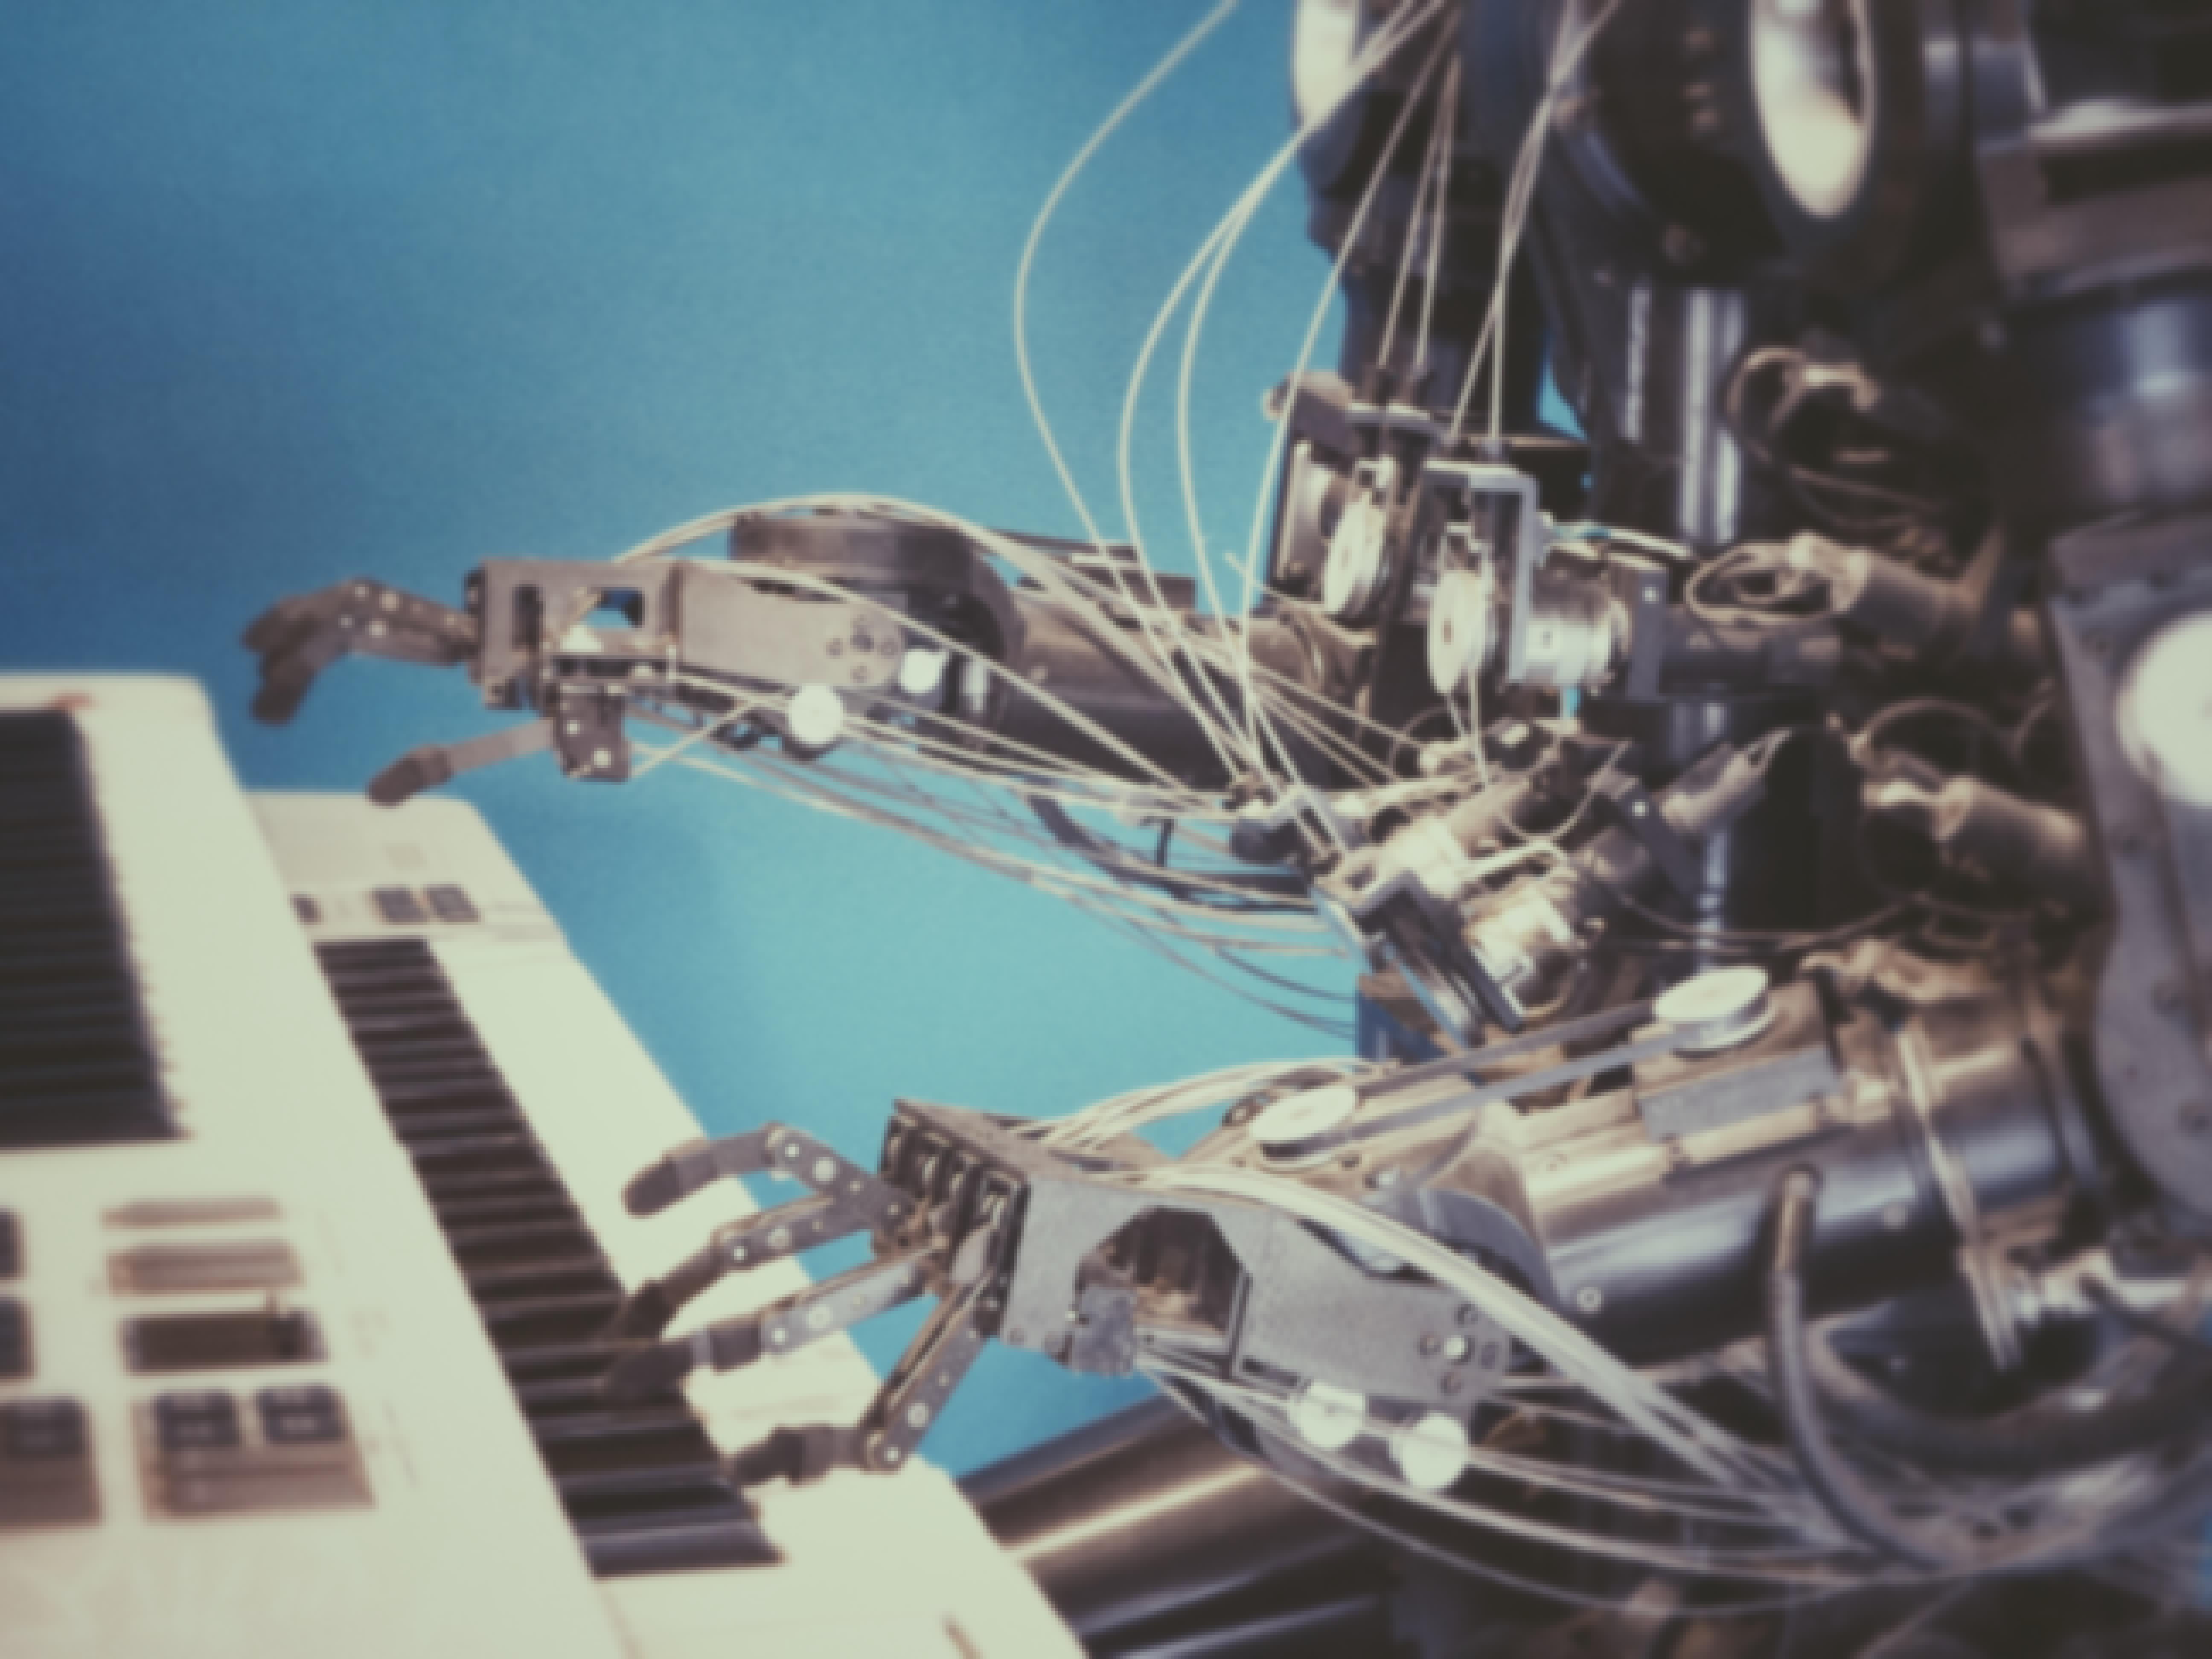 Automated piano play by a robot